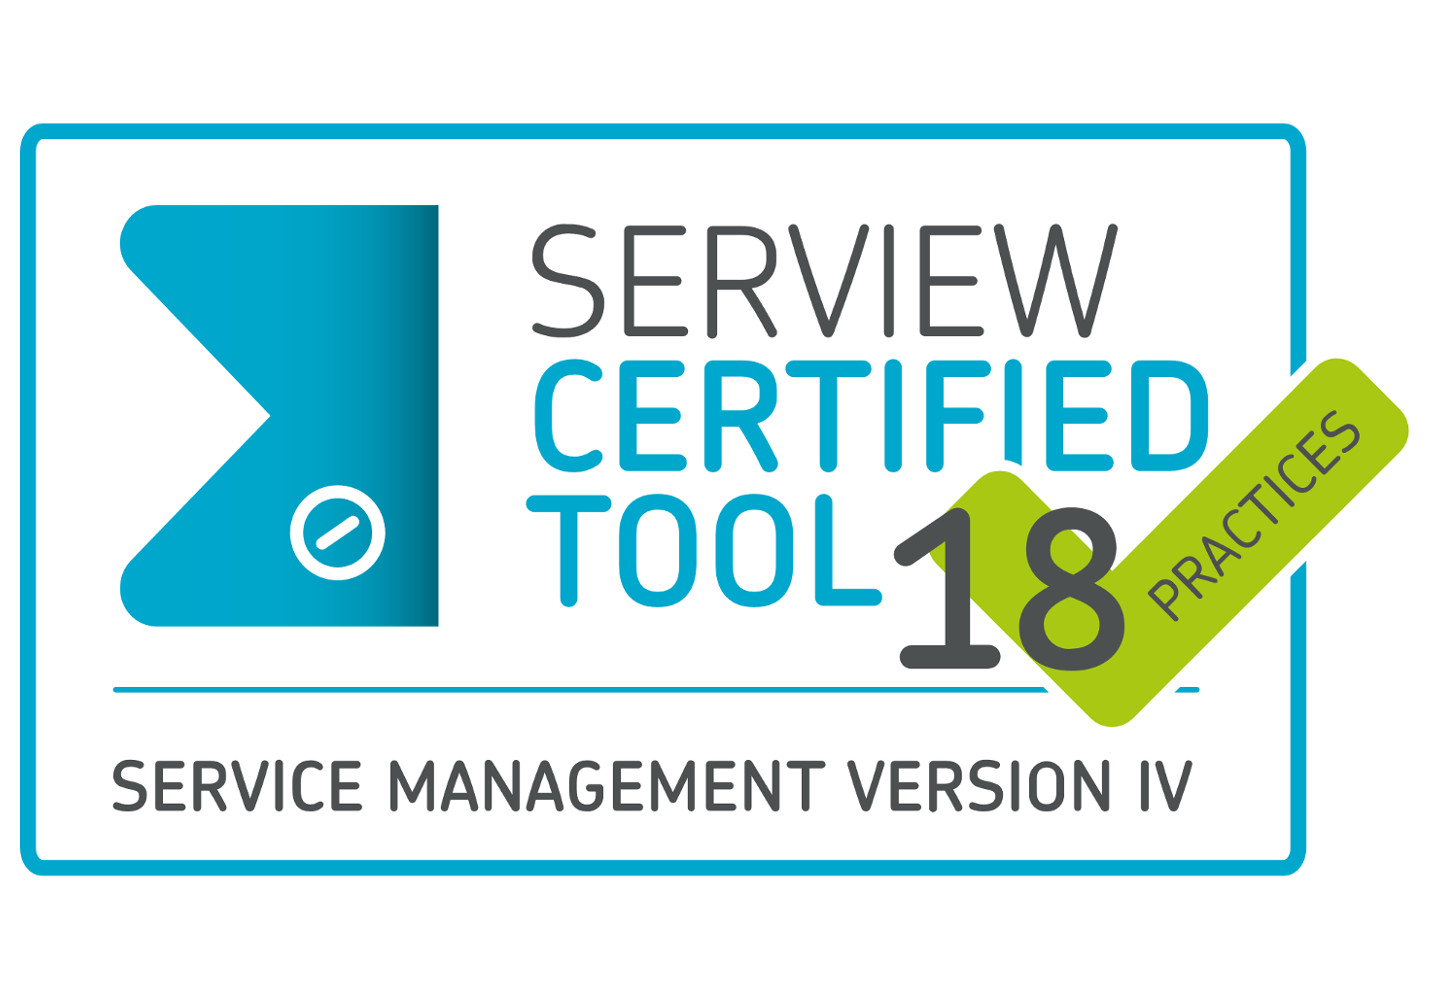 DCON Newsroom_PM 01-2021_SERVIEW CERTIFIEDTOOL